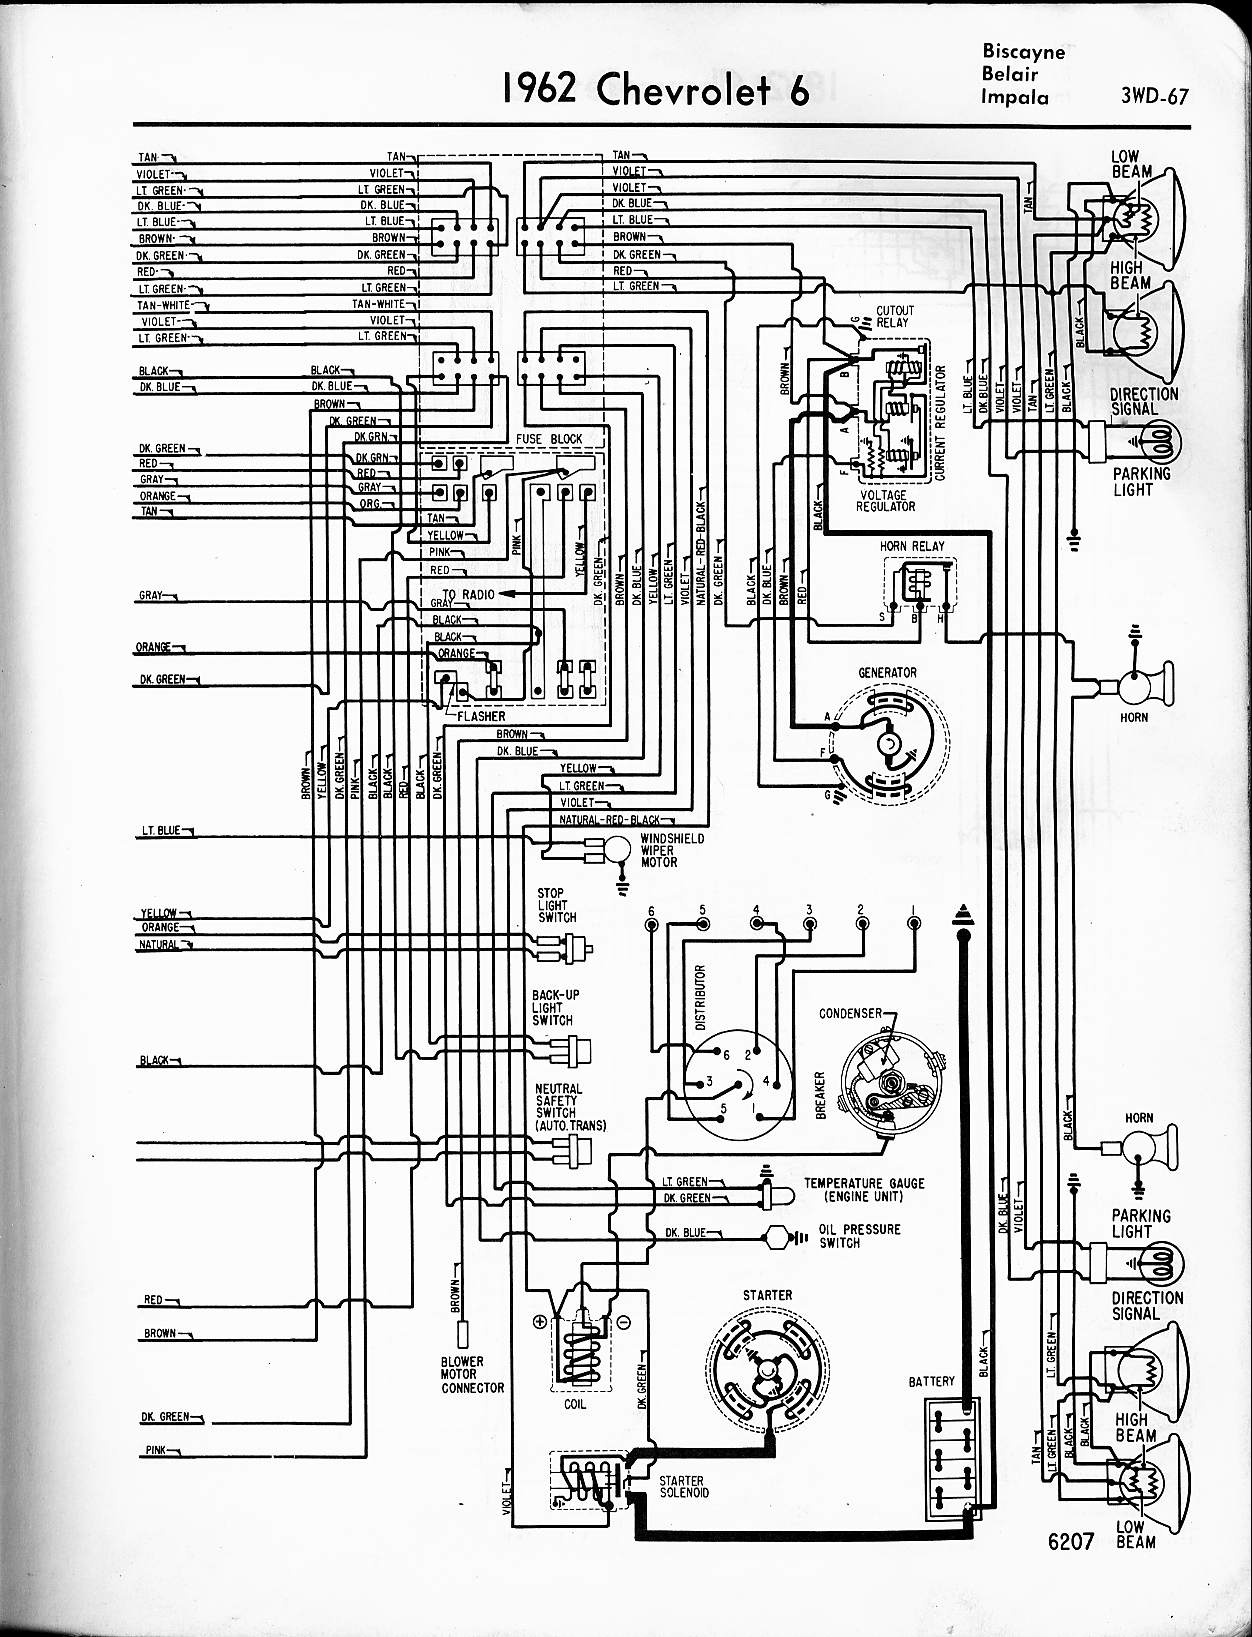 1963 Chevy Nova Wiring Schematic likewise 1966 Cadillac Eldorado Wiring Diagram additionally 1964 Type 3 Vw Wiring Diagram besides Vacuum Lines For Sale Autozone as well P 0900c1528003da59. on 1964 buick riviera engine